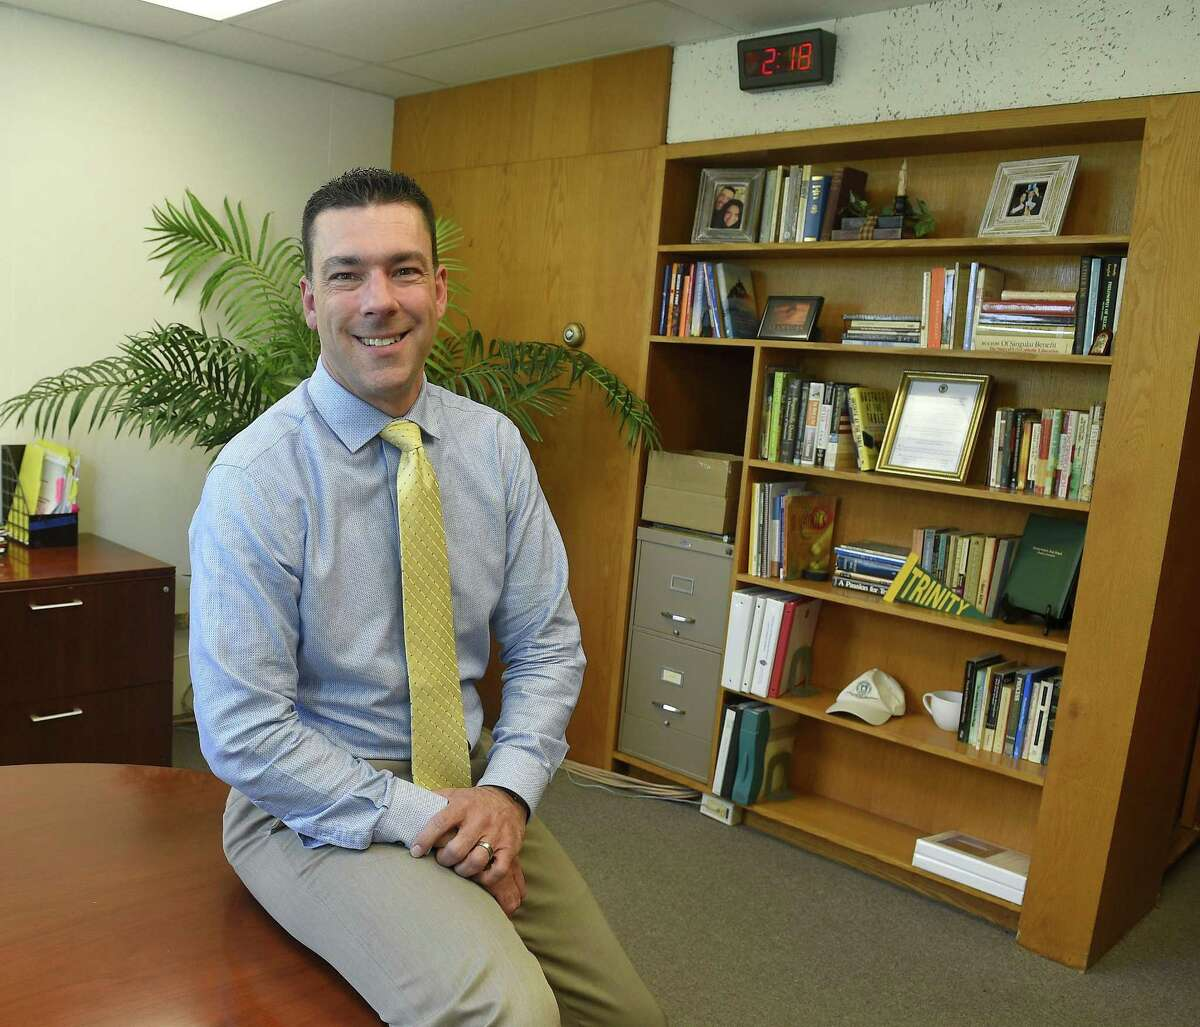 Scott Smith, Trinity Catholic High School New Principal is photograph on August 24, 2018 at the school in Stamford, Connecticut.